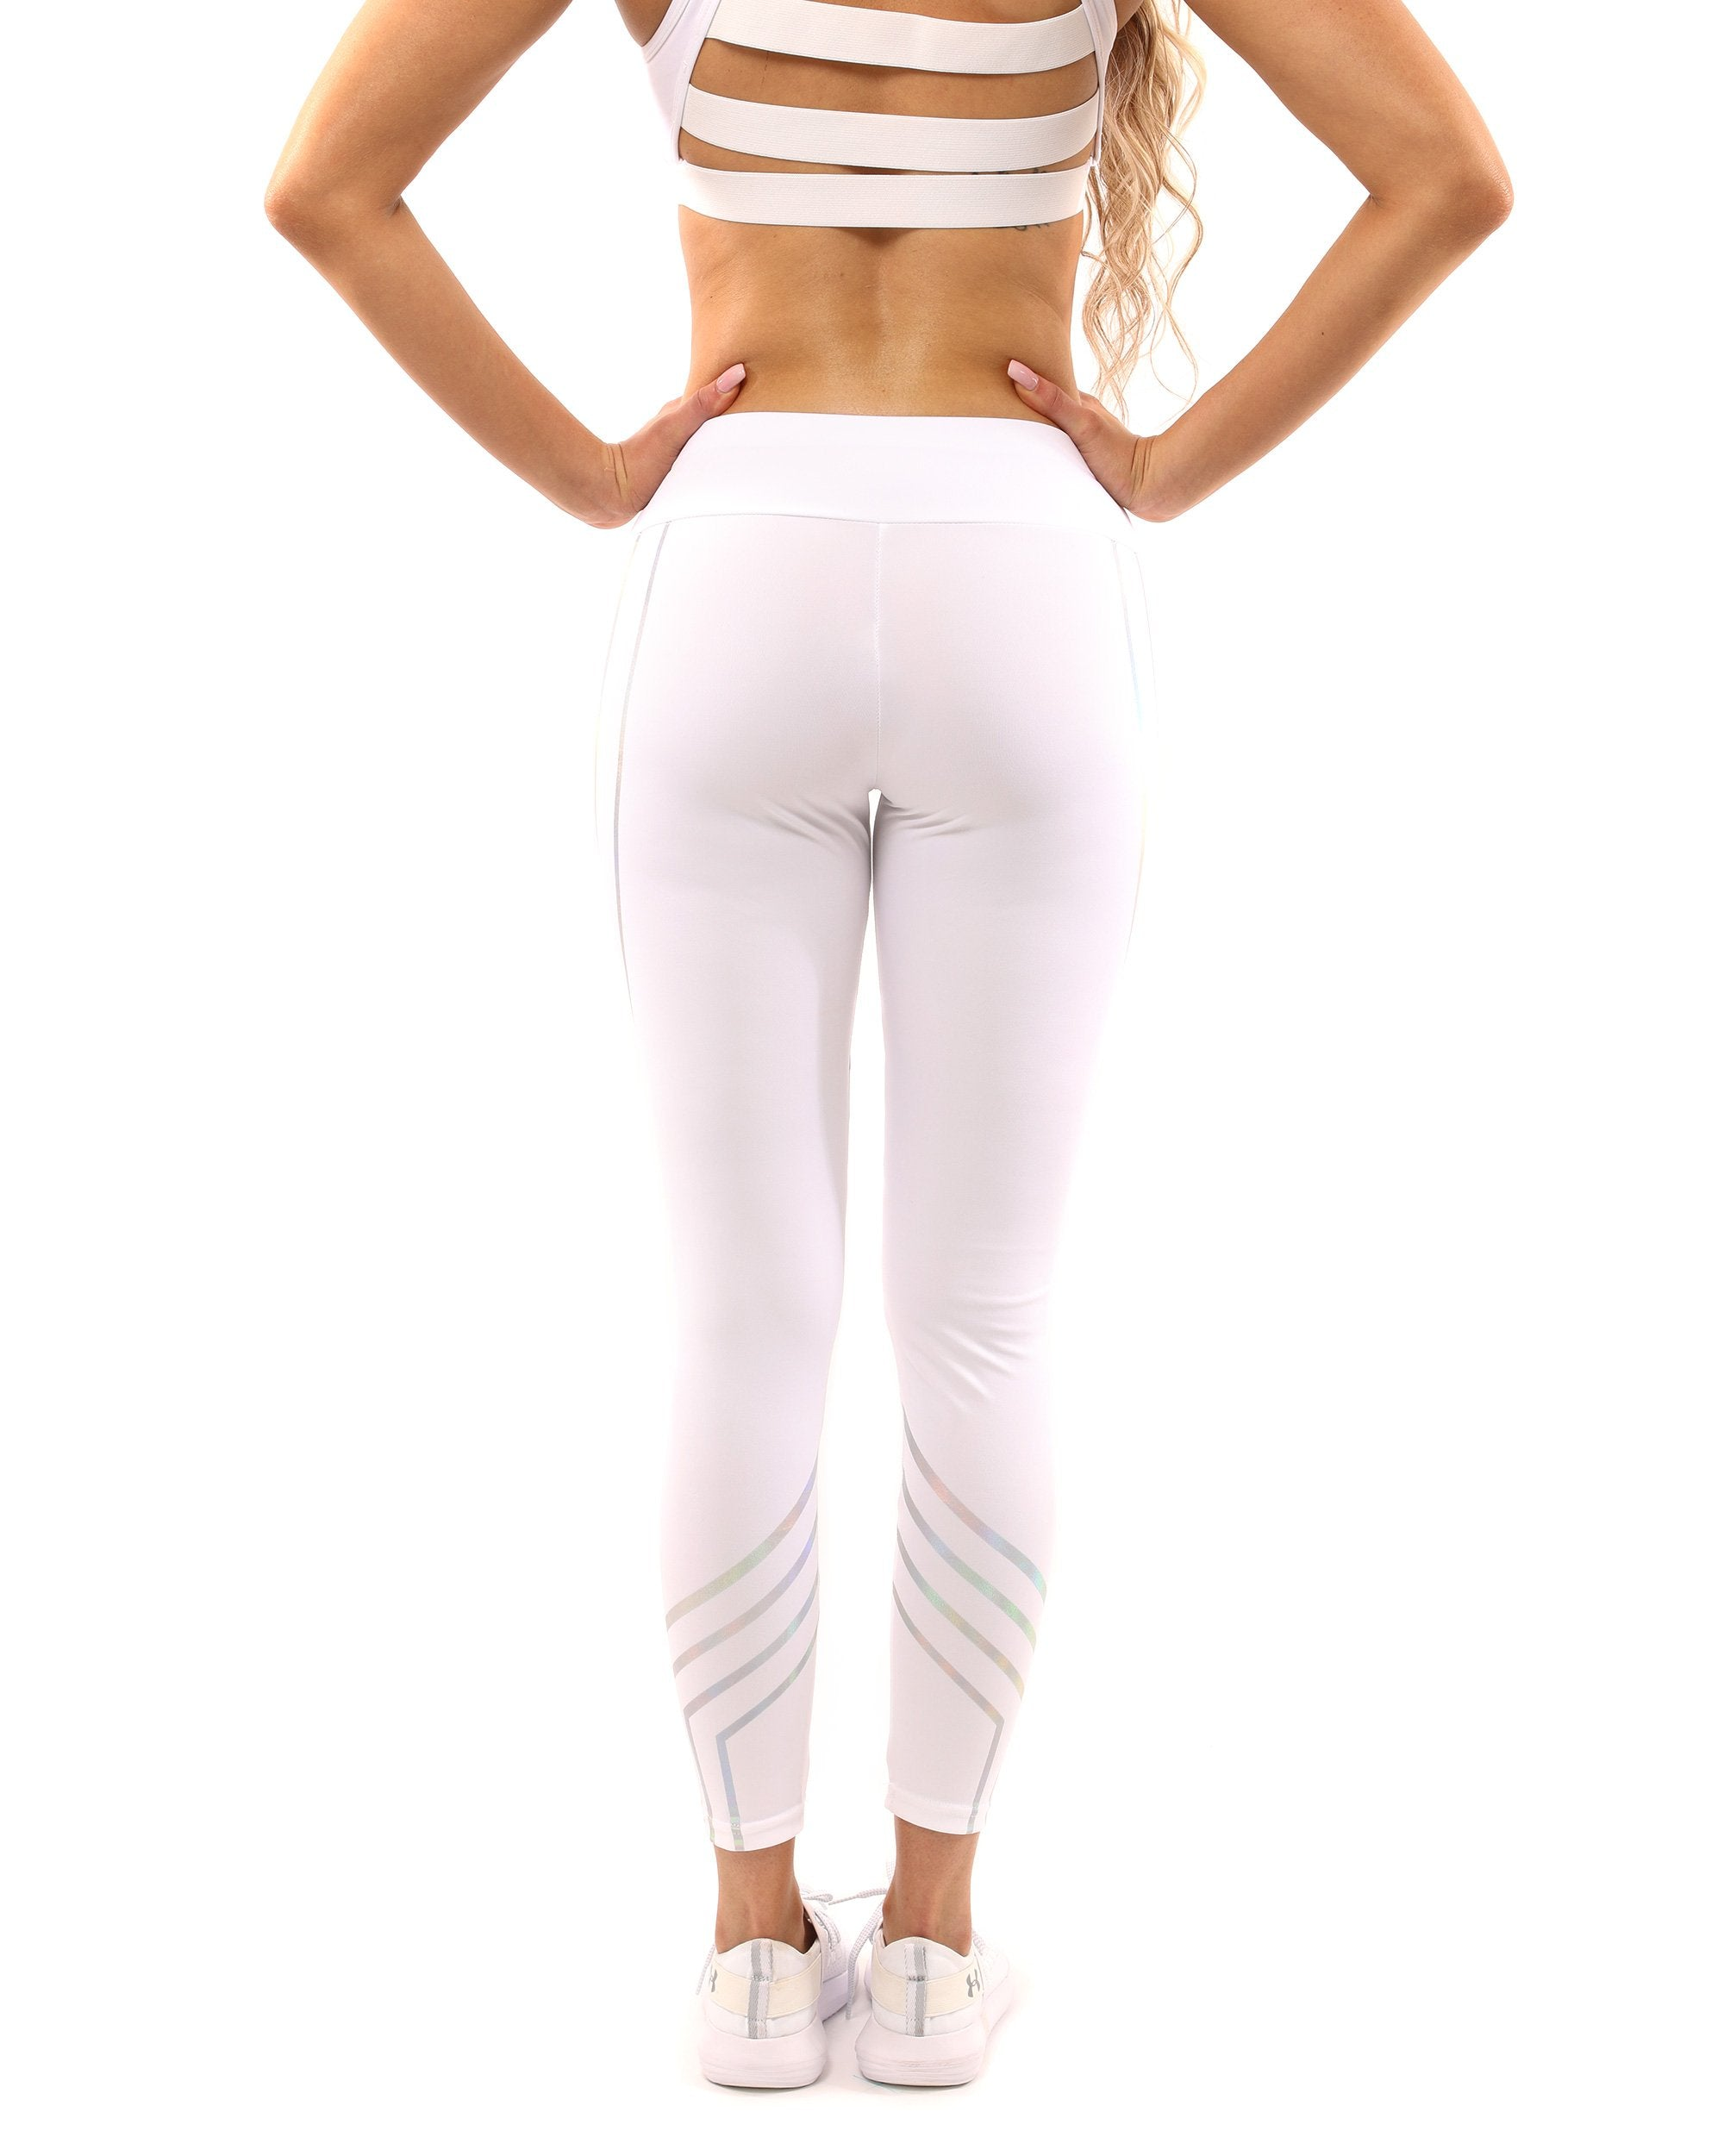 Laguna Leggings - White